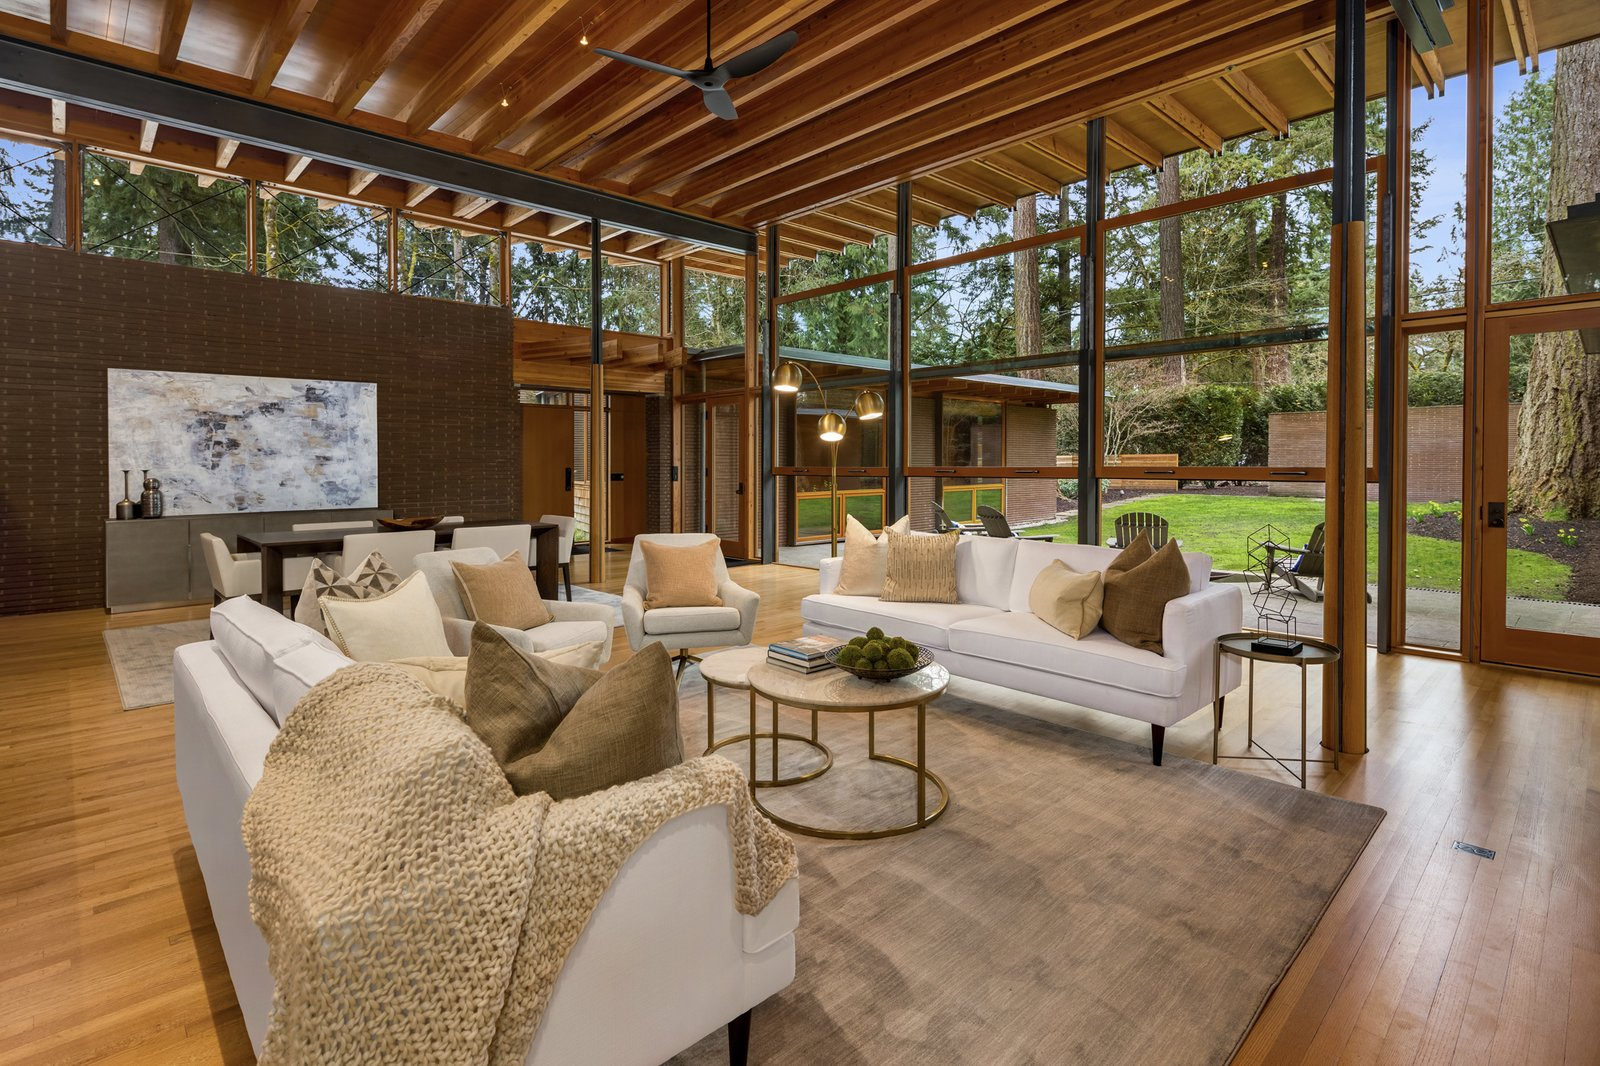 """Living Room, Sofa, Ceiling Lighting, End Tables, Chair, Track Lighting, Medium Hardwood Floor, and Coffee Tables Built in 2014, this contemporary home is located in Beaux Arts Village, <span style=""""font-family: Theinhardt, -apple-system, BlinkMacSystemFont, &quot;Segoe UI&quot;, Roboto, Oxygen-Sans, Ubuntu, Cantarell, &quot;Helvetica Neue&quot;, sans-serif;"""">a small, lakeside town across the water from Seattle, Washington, near Bellevue. The single-story home is comprised of two wings, with a double-height central great room overlooking </span>  Photo 1 of 7 in A Jim Cutler–Designed Beaux Arts Contemporary Asks $5.2M"""